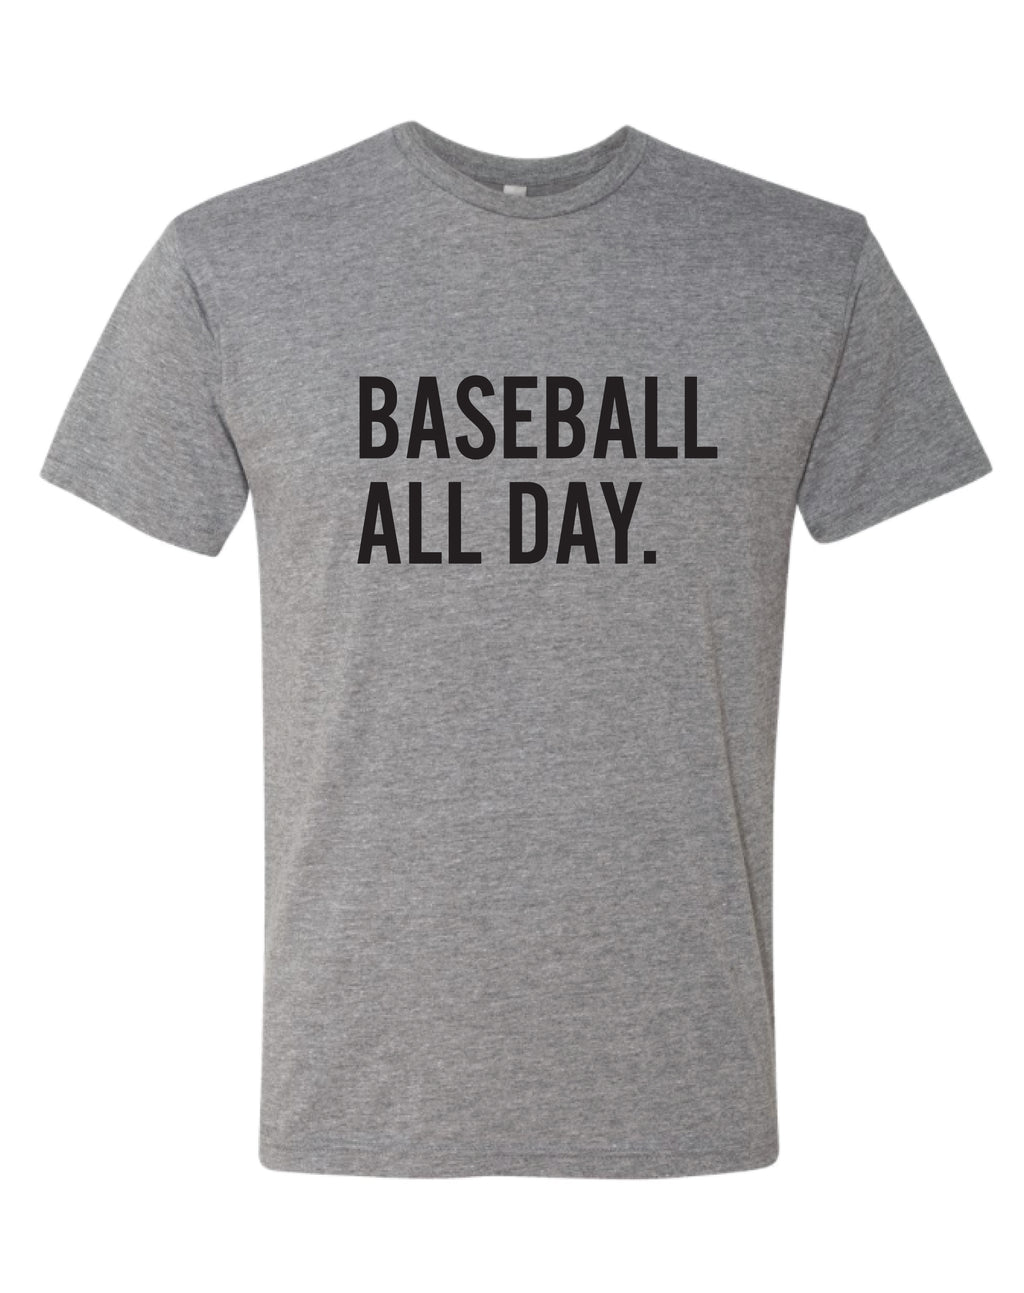 Baseball All Day - Unisex Triblend Crew Tee